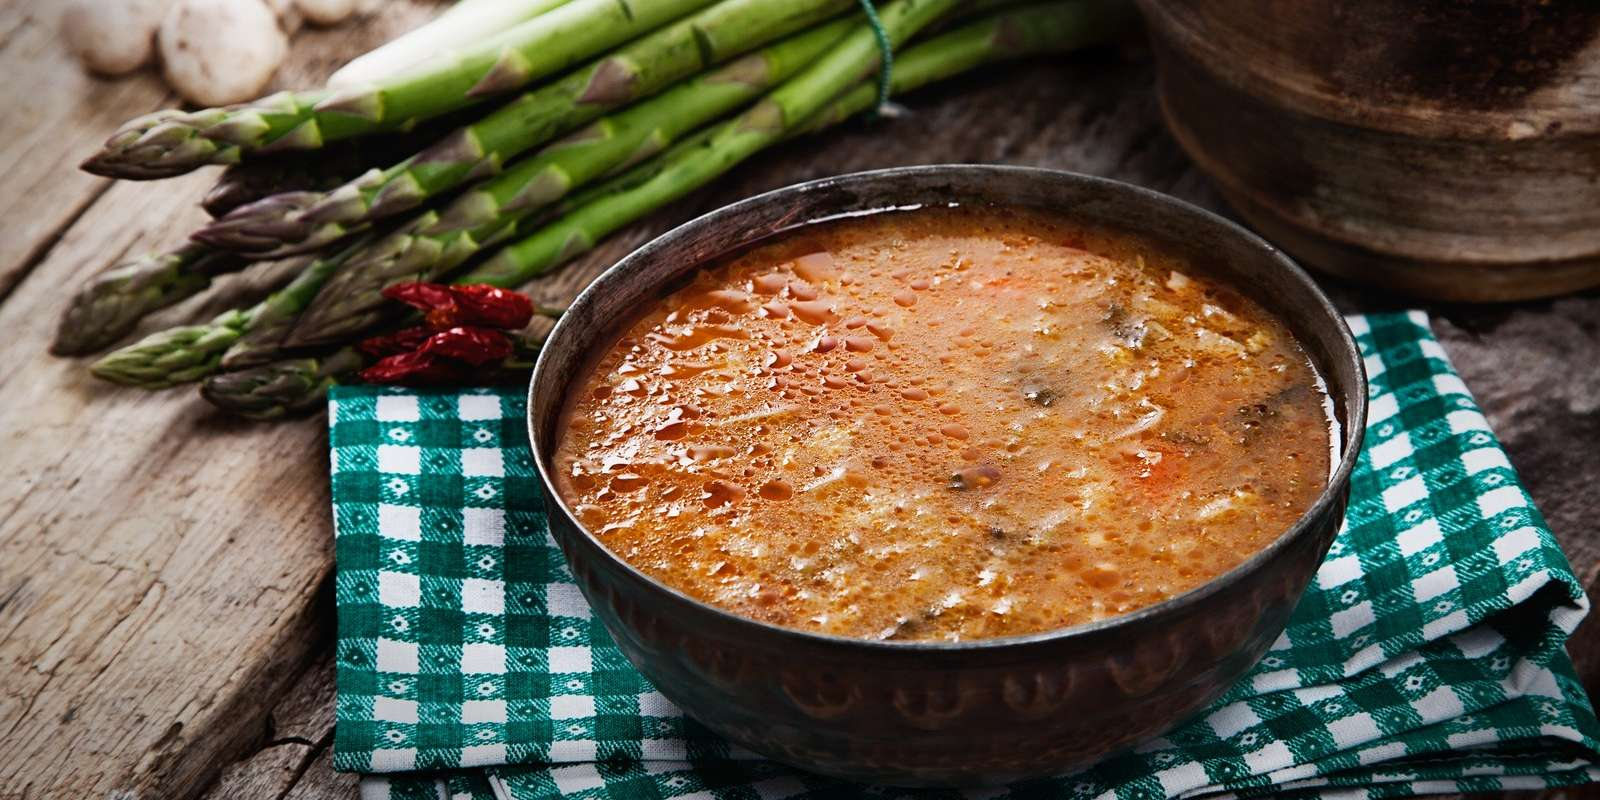 Carrot Soup with Asparagus